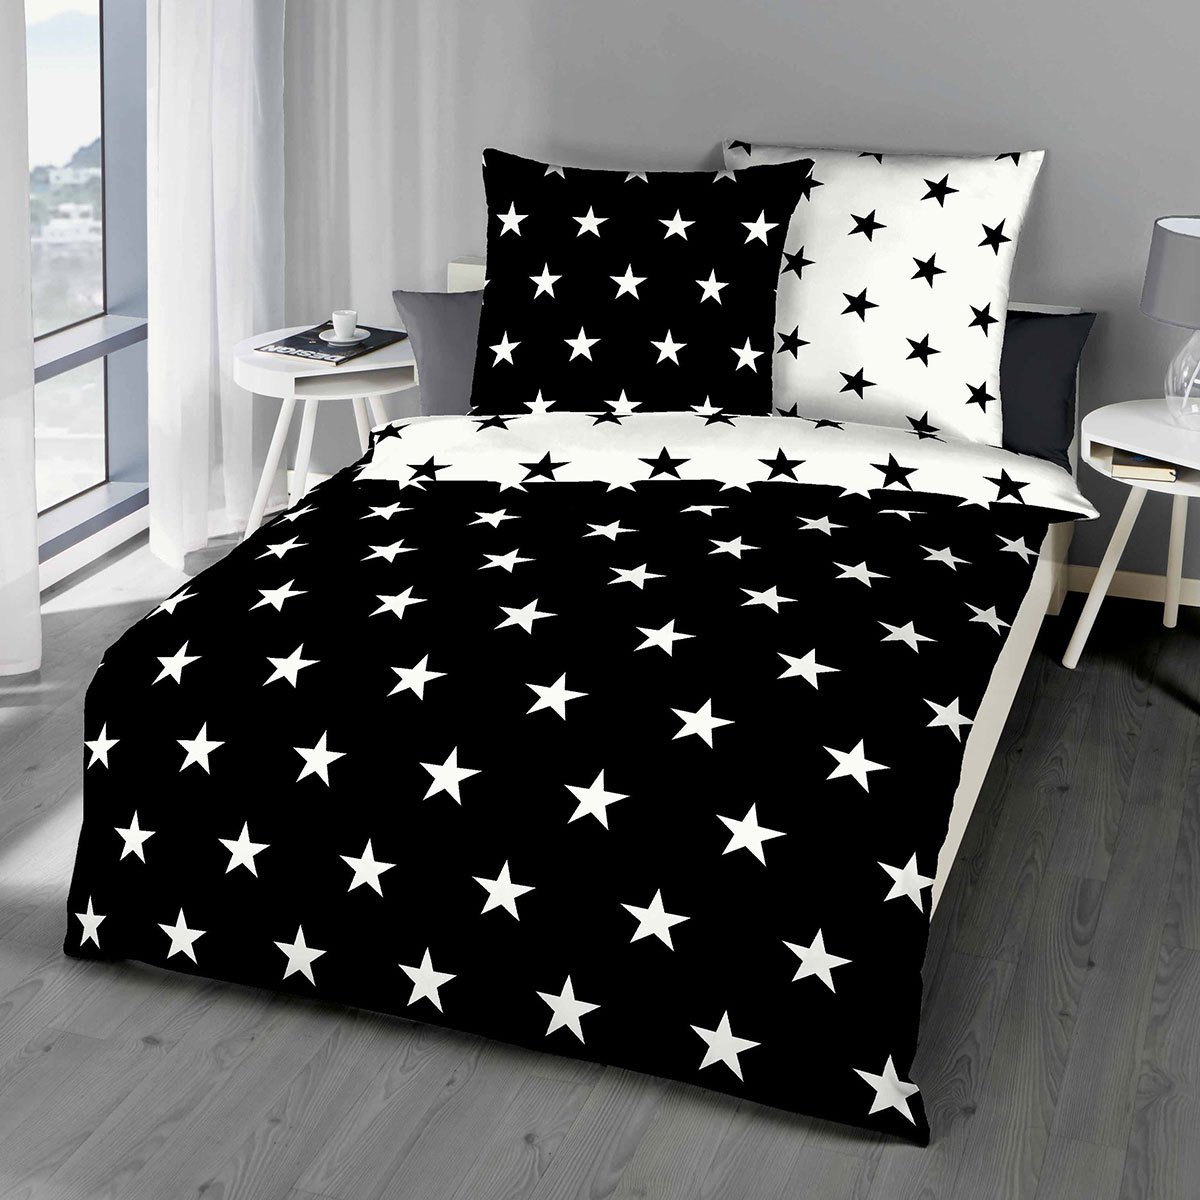 bettwarenshop mako satin bettw sche stars schwarz g nstig online kaufen bei bettwaren shop. Black Bedroom Furniture Sets. Home Design Ideas